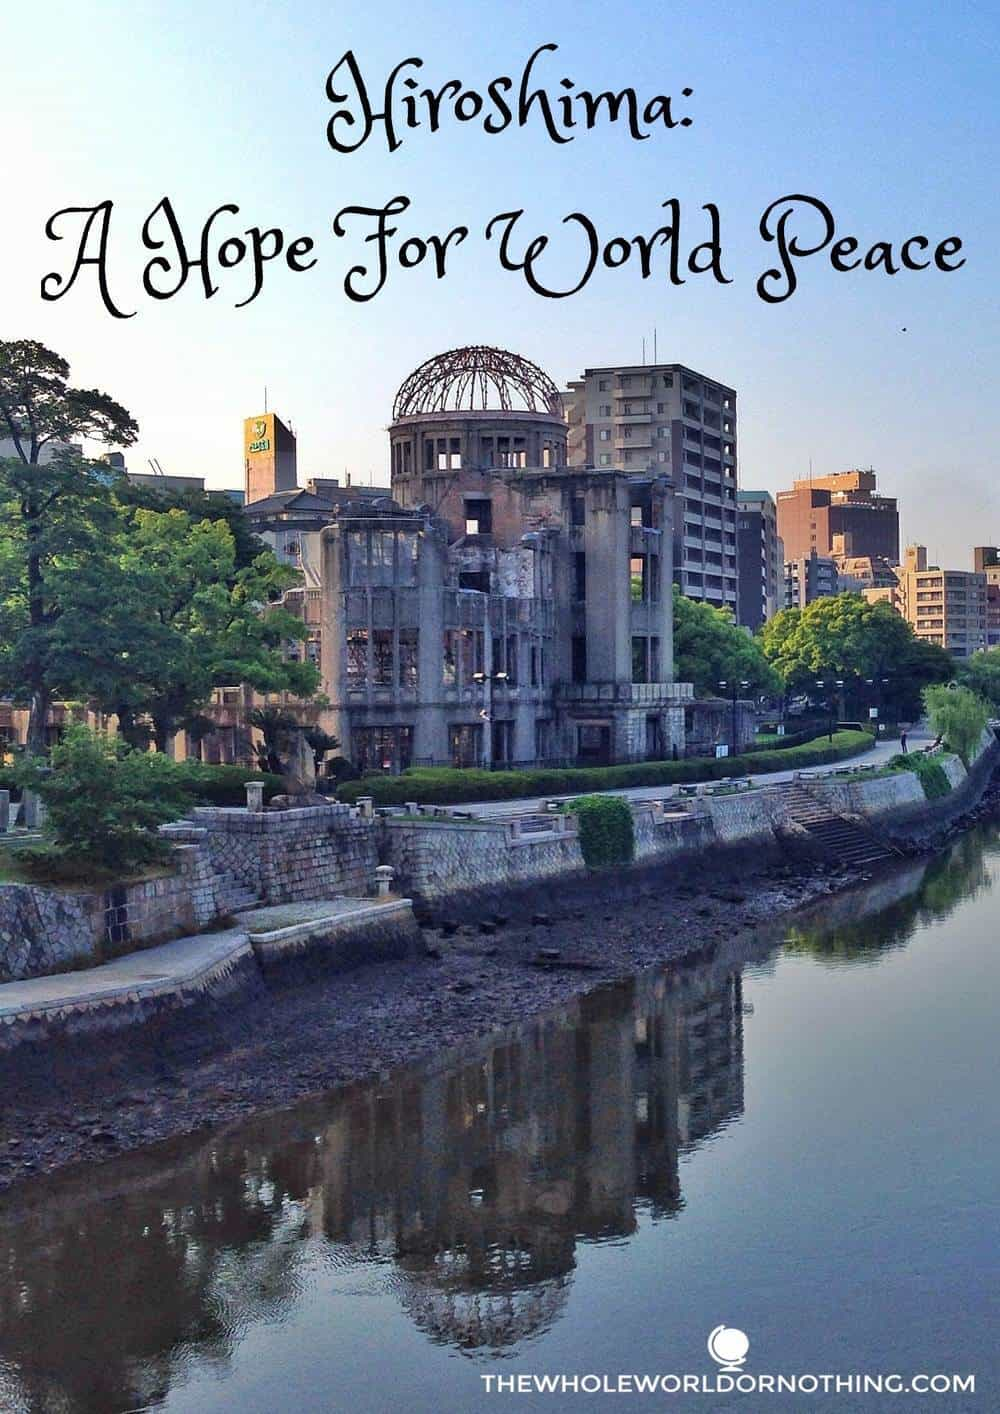 A-bomb building with text overlay Hiroshima A hope for world peace